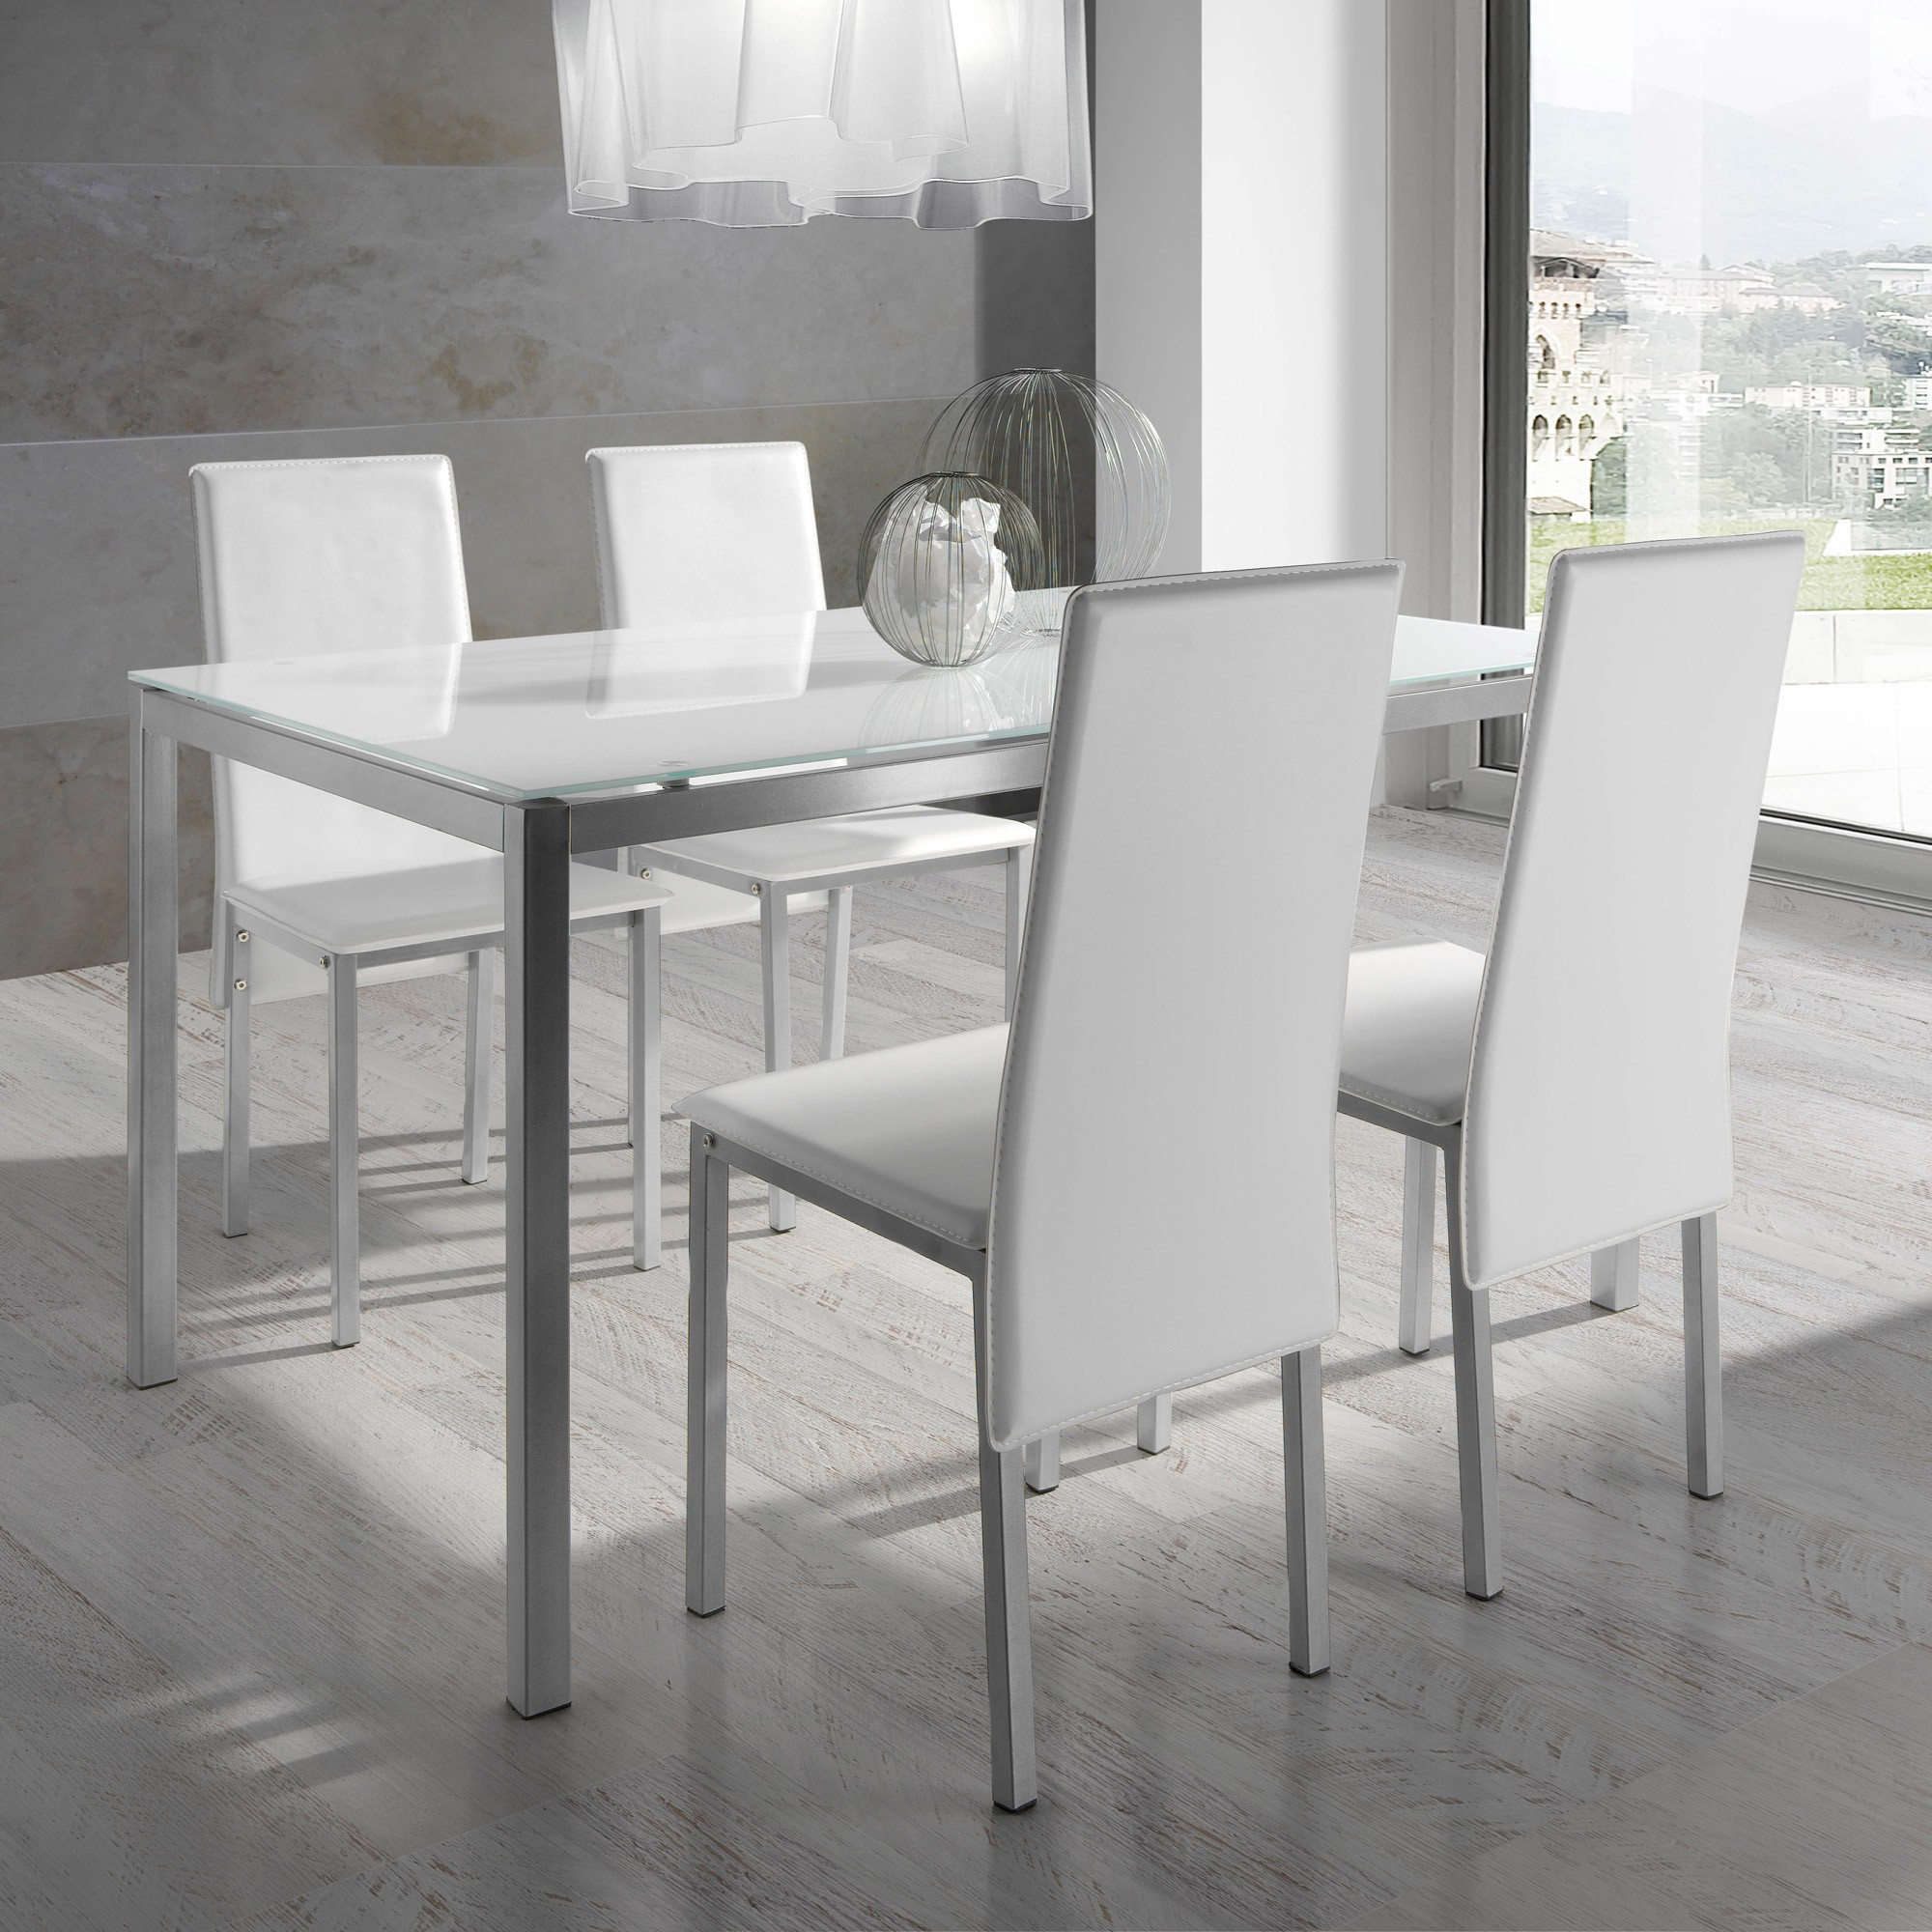 Ensemble table et chaise salle a manger but chaise for Ensemble table et chaises salle a manger